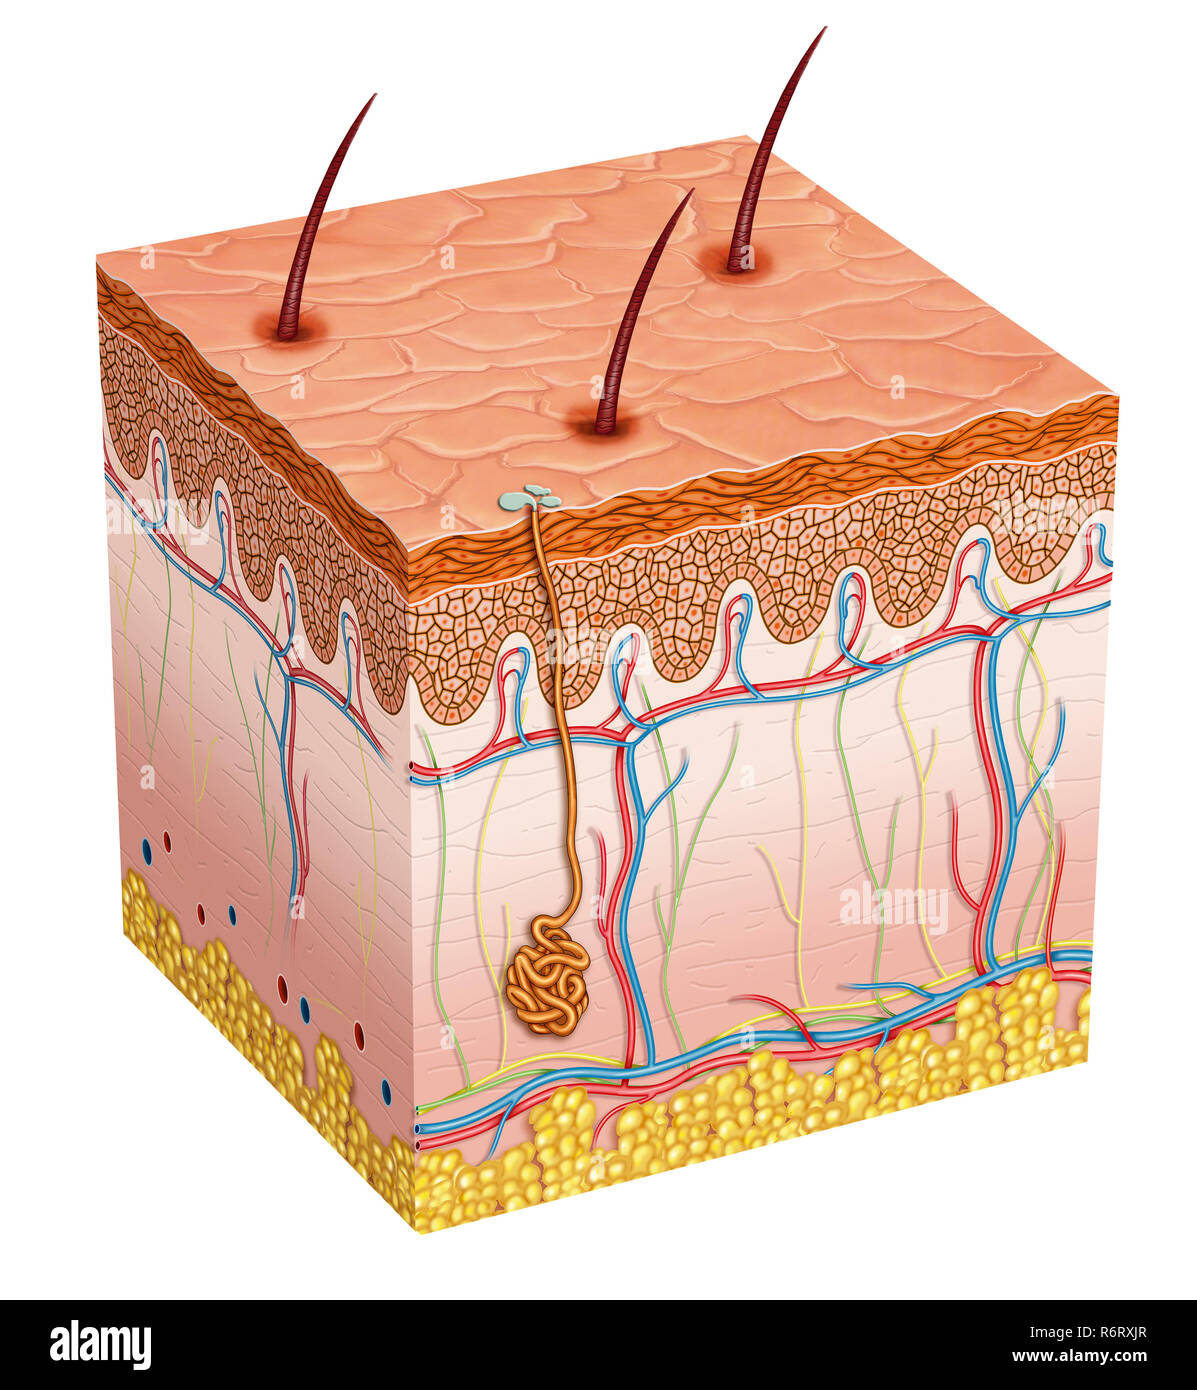 anatomy of human skin - Stock Image